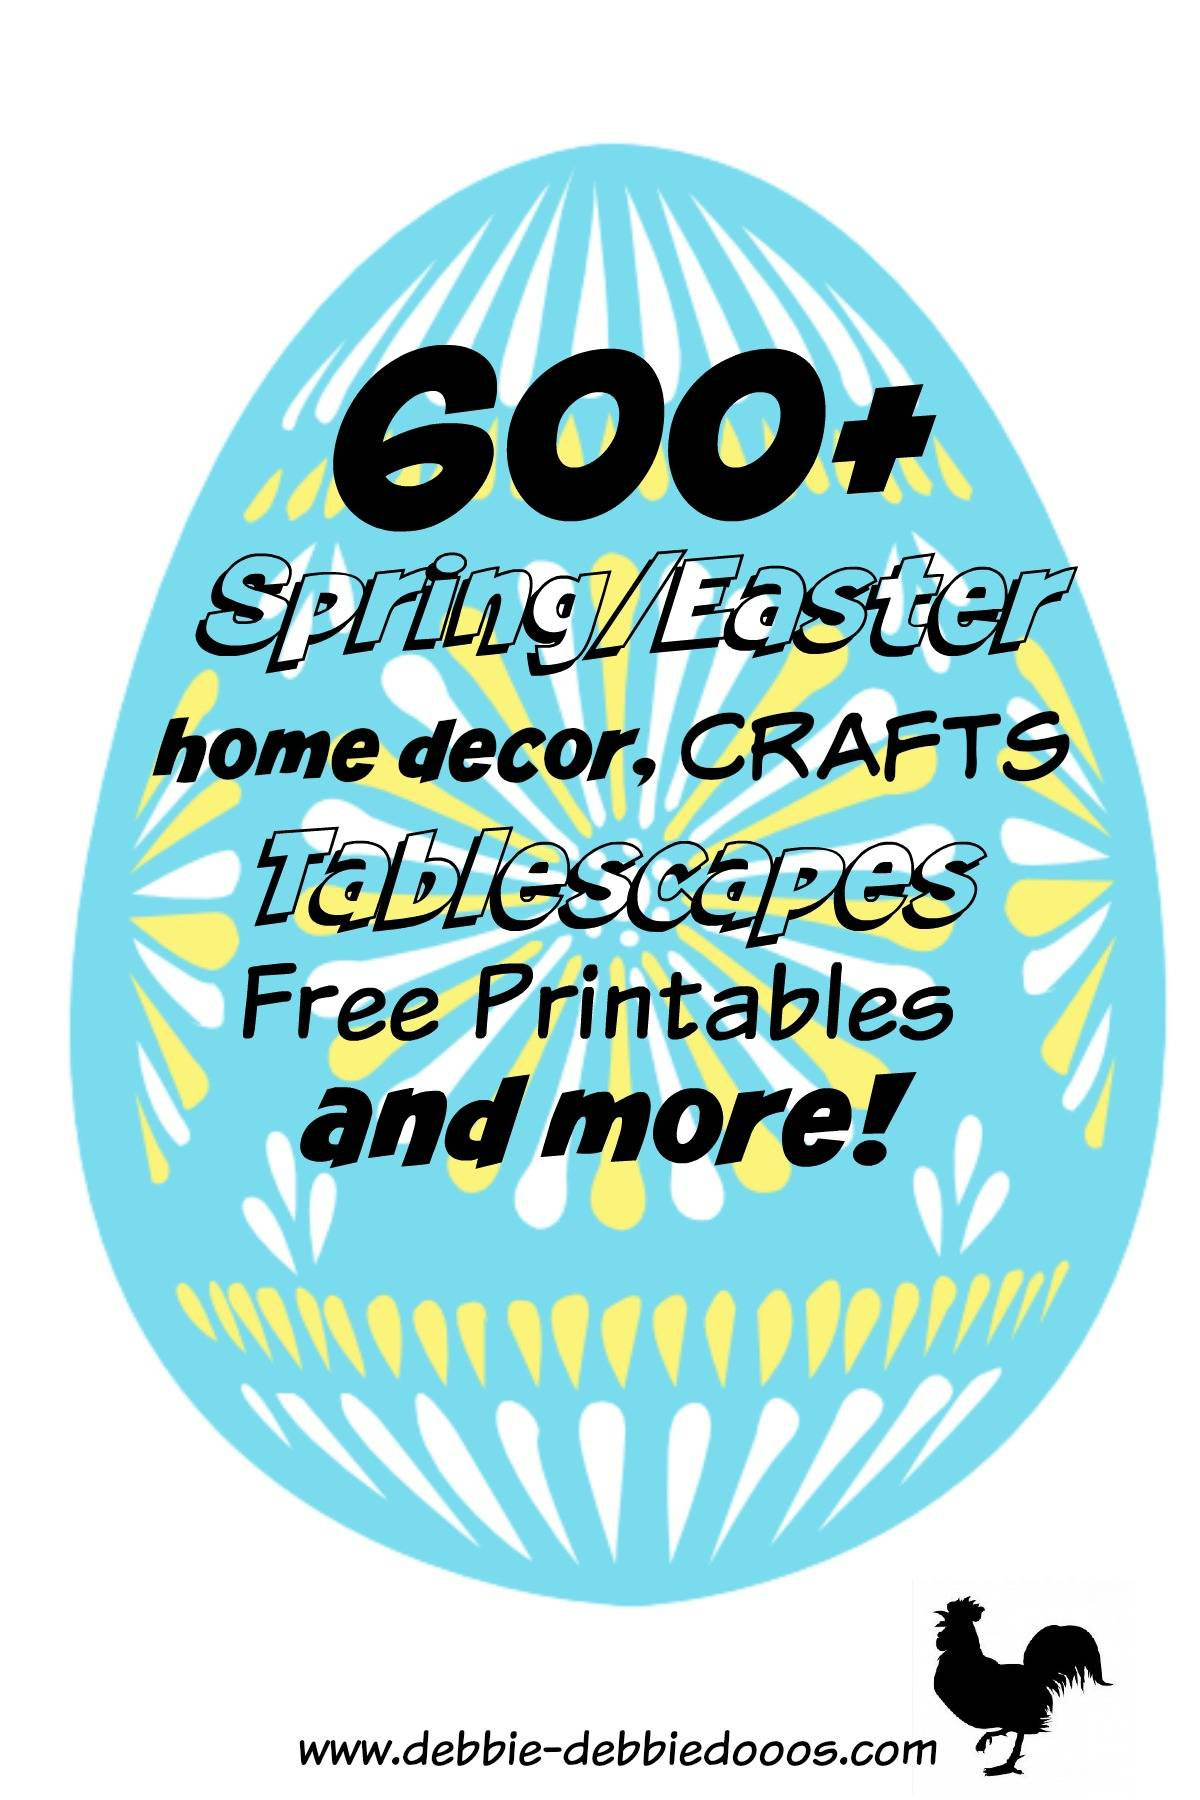 All things spring over 600 inspired ideas right here for Home decor and more